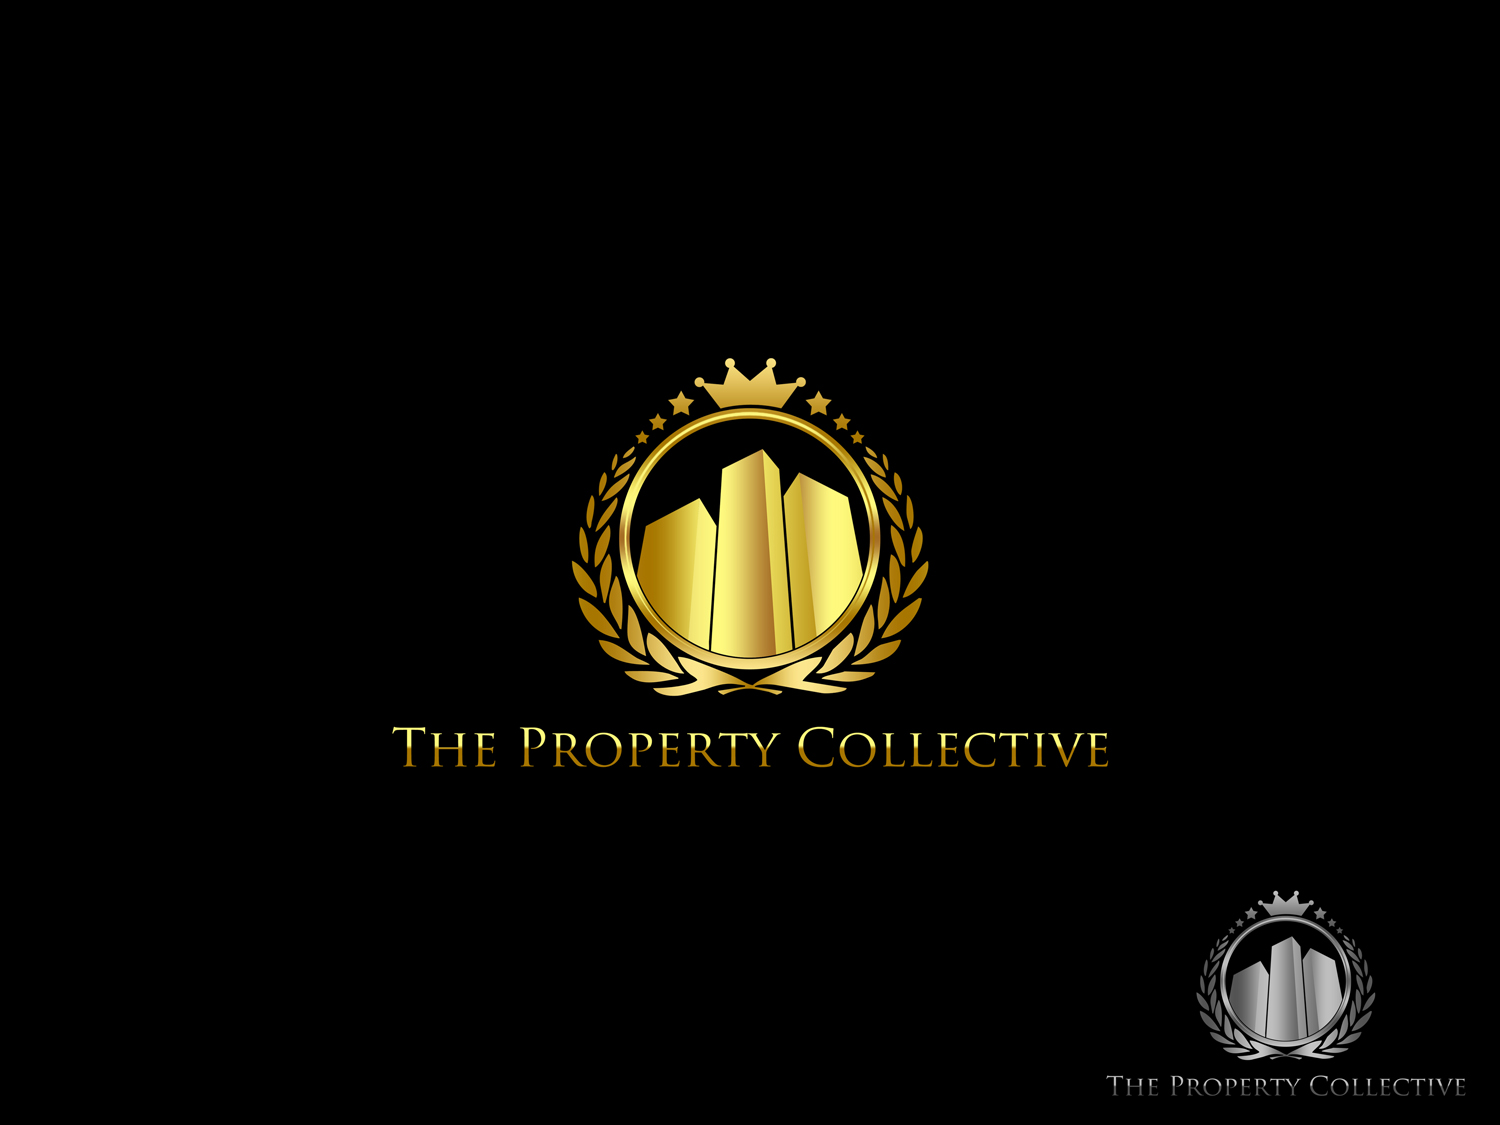 Logo Design by Qoaldjsk - Entry No. 227 in the Logo Design Contest Unique Logo Design Wanted for TPC.